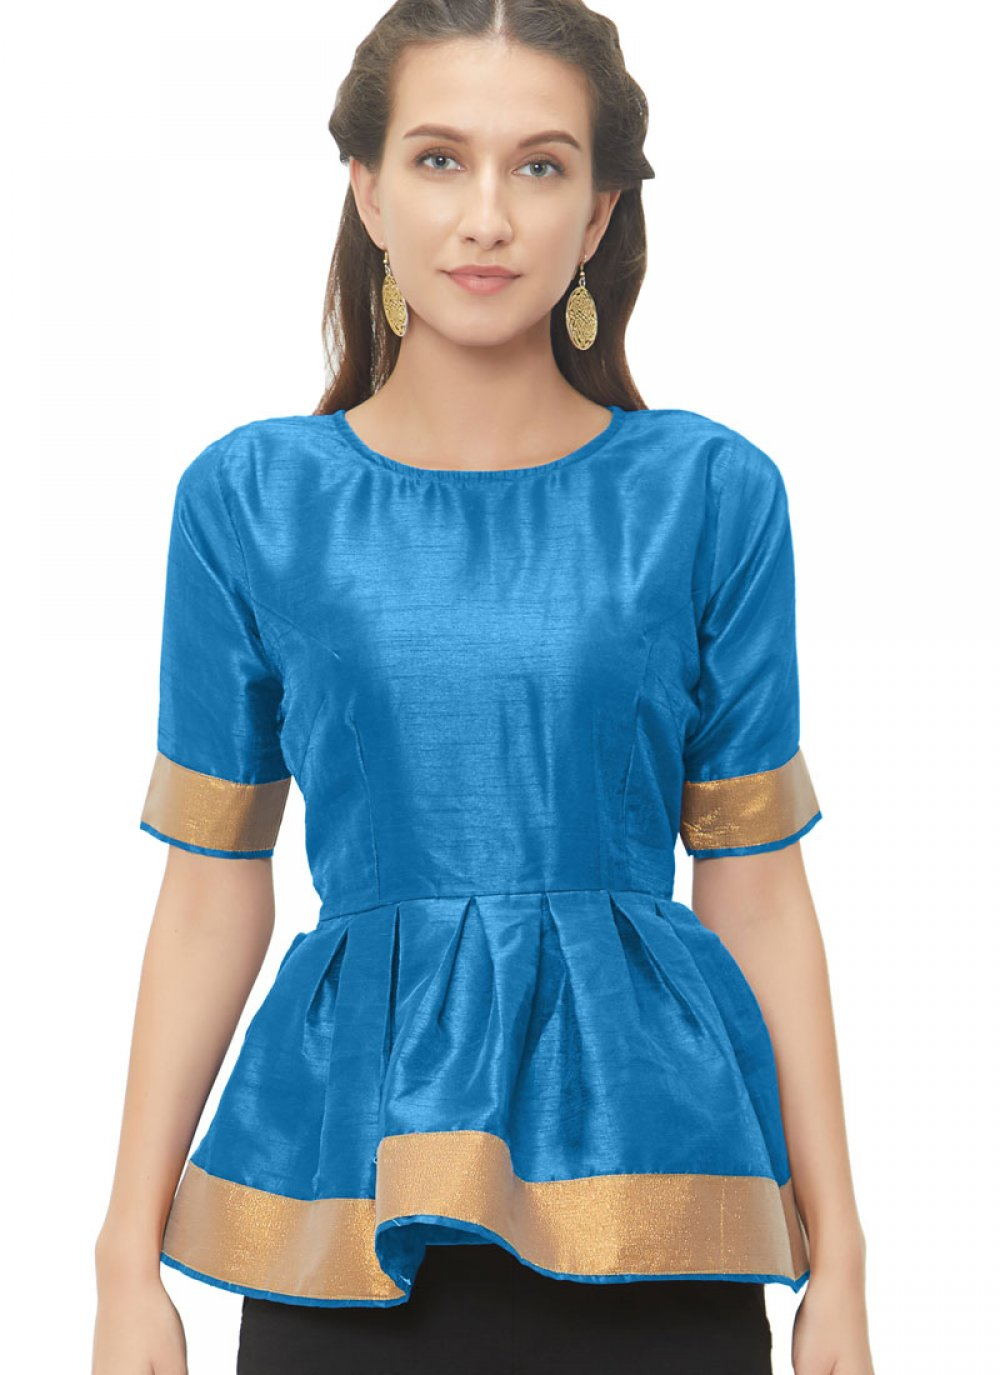 Graceful Turquoise Readymade Blouse With Lace Work